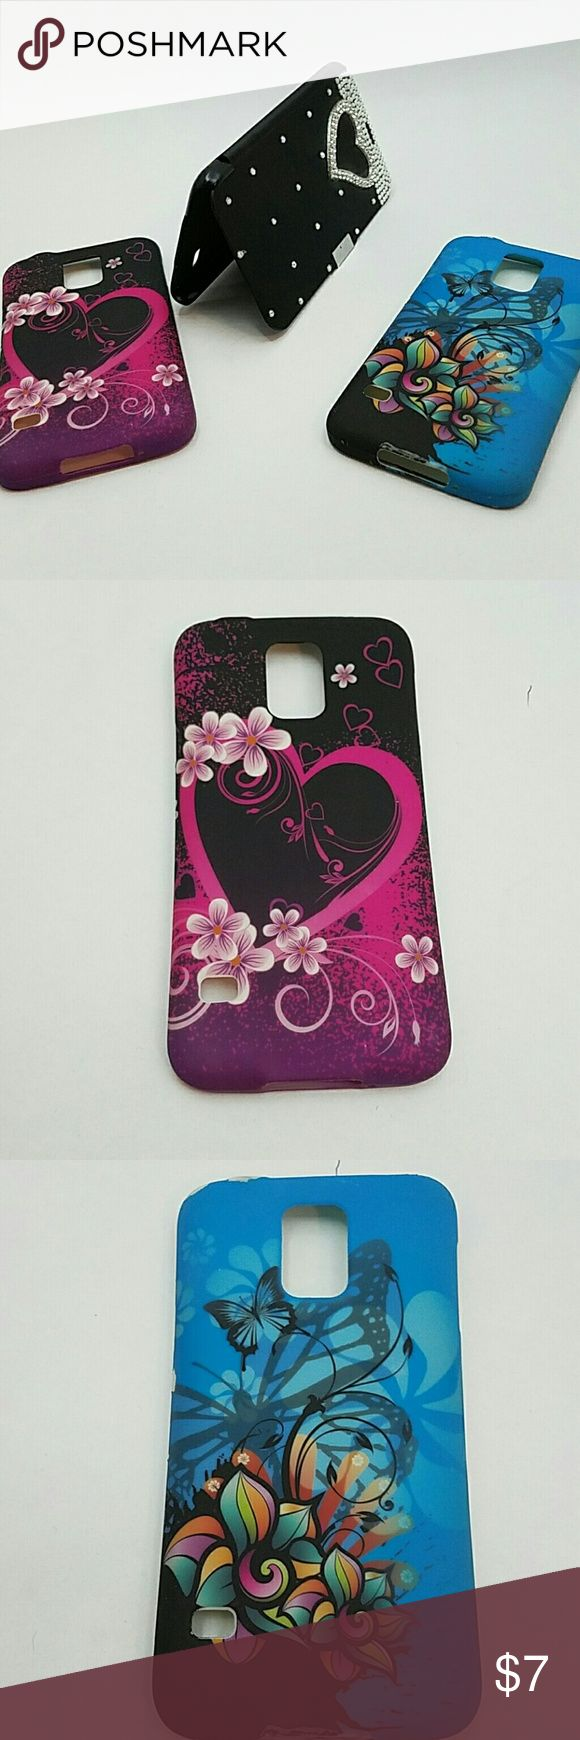 Bundle of 3 galaxy s 5 phone cases 1 pink 1 blue and 1 black Samsung Galaxy S 5 cell phone cases all priced for less than 1! Pink one has a heart and flowers on it, blue one has flowers and butterflies on it and the black one has rhinestones all over it and the shape of a heart in rhinestones and opens up covering your phone completely! Accessories Phone Cases